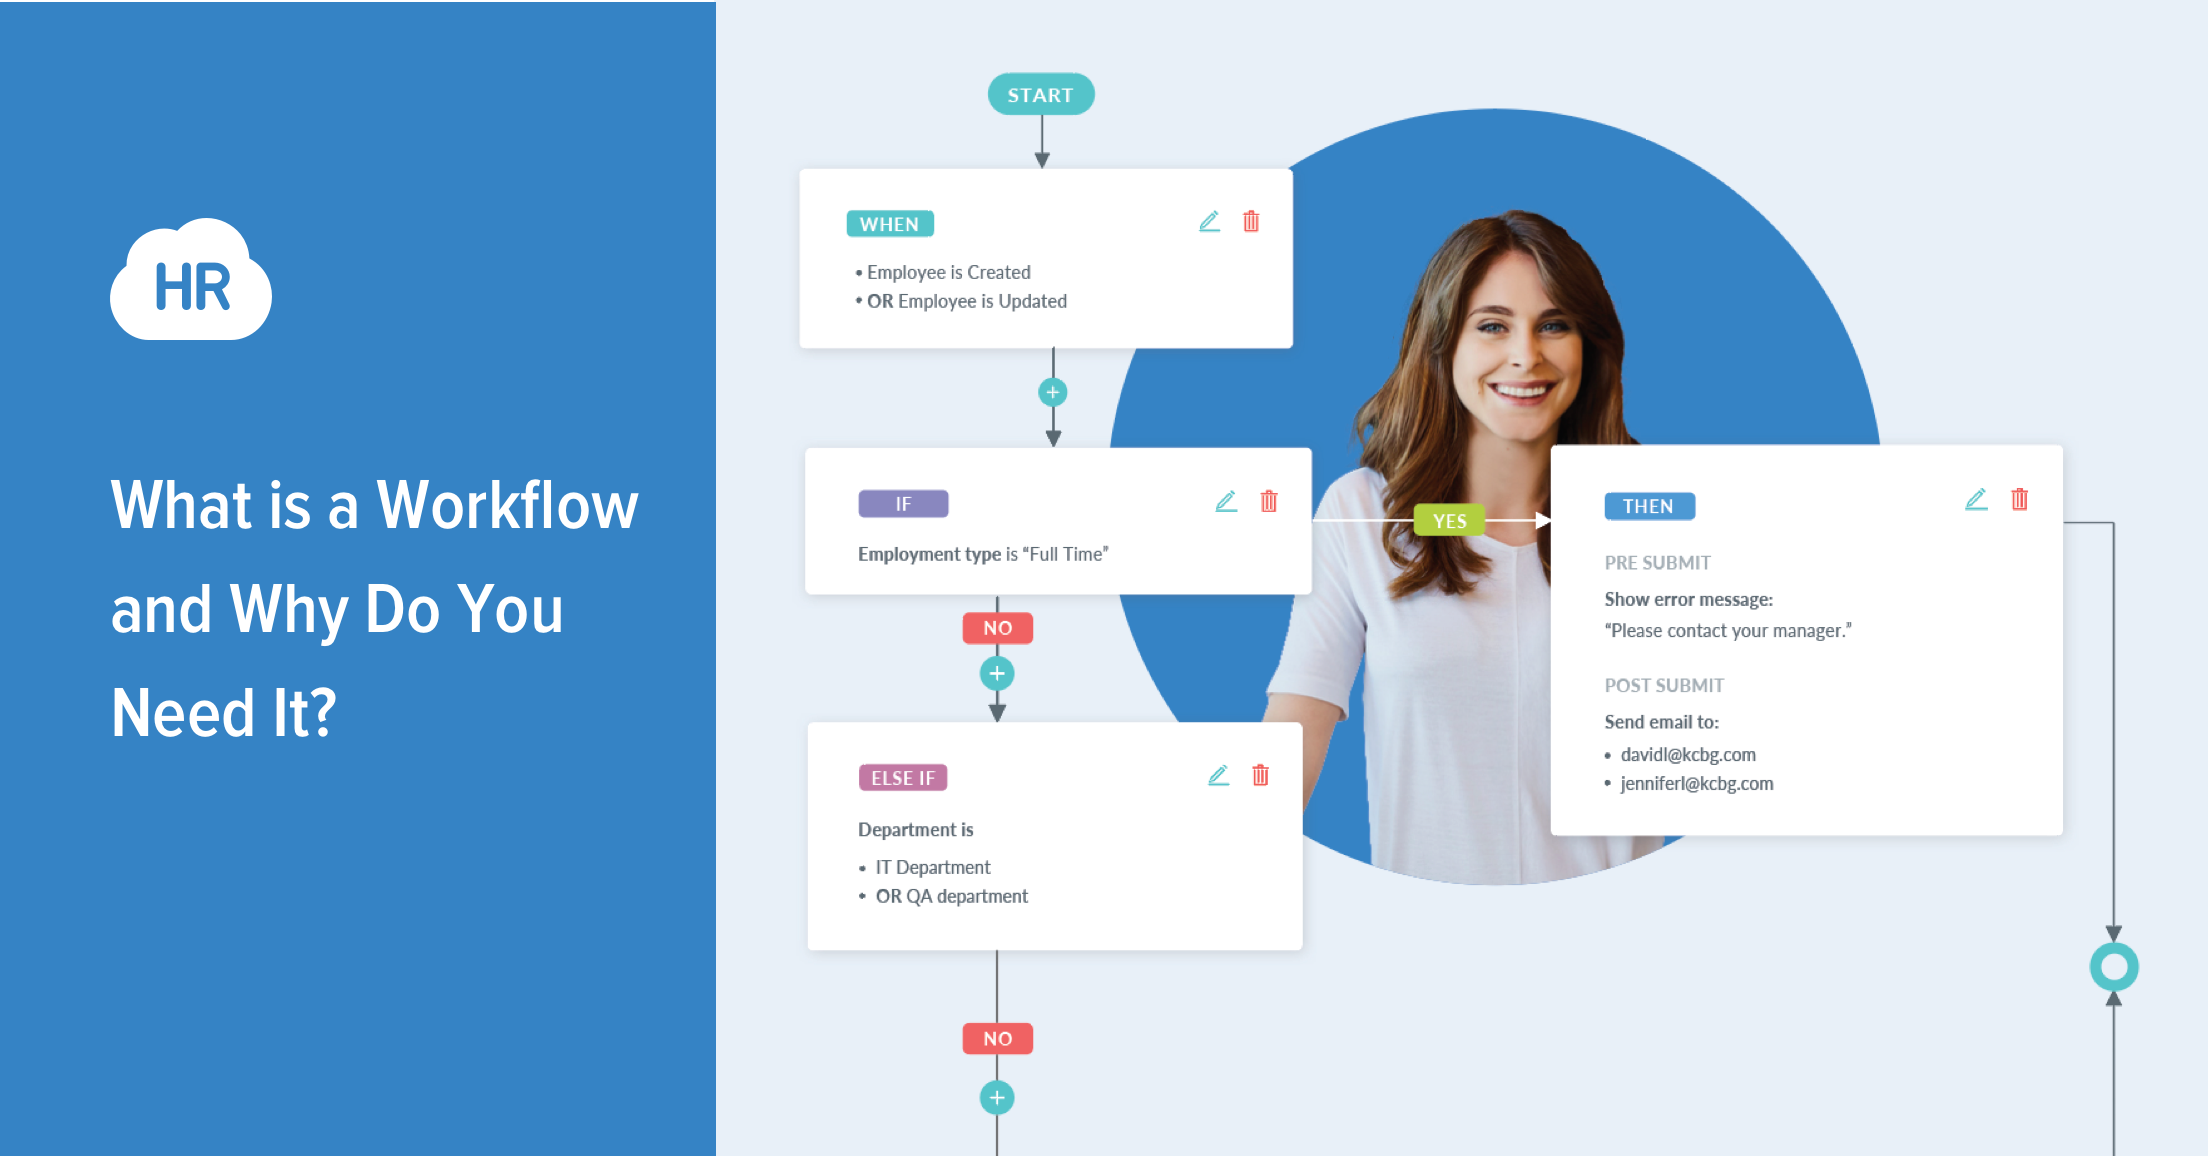 What is a Workflow and Why Do You Need It?